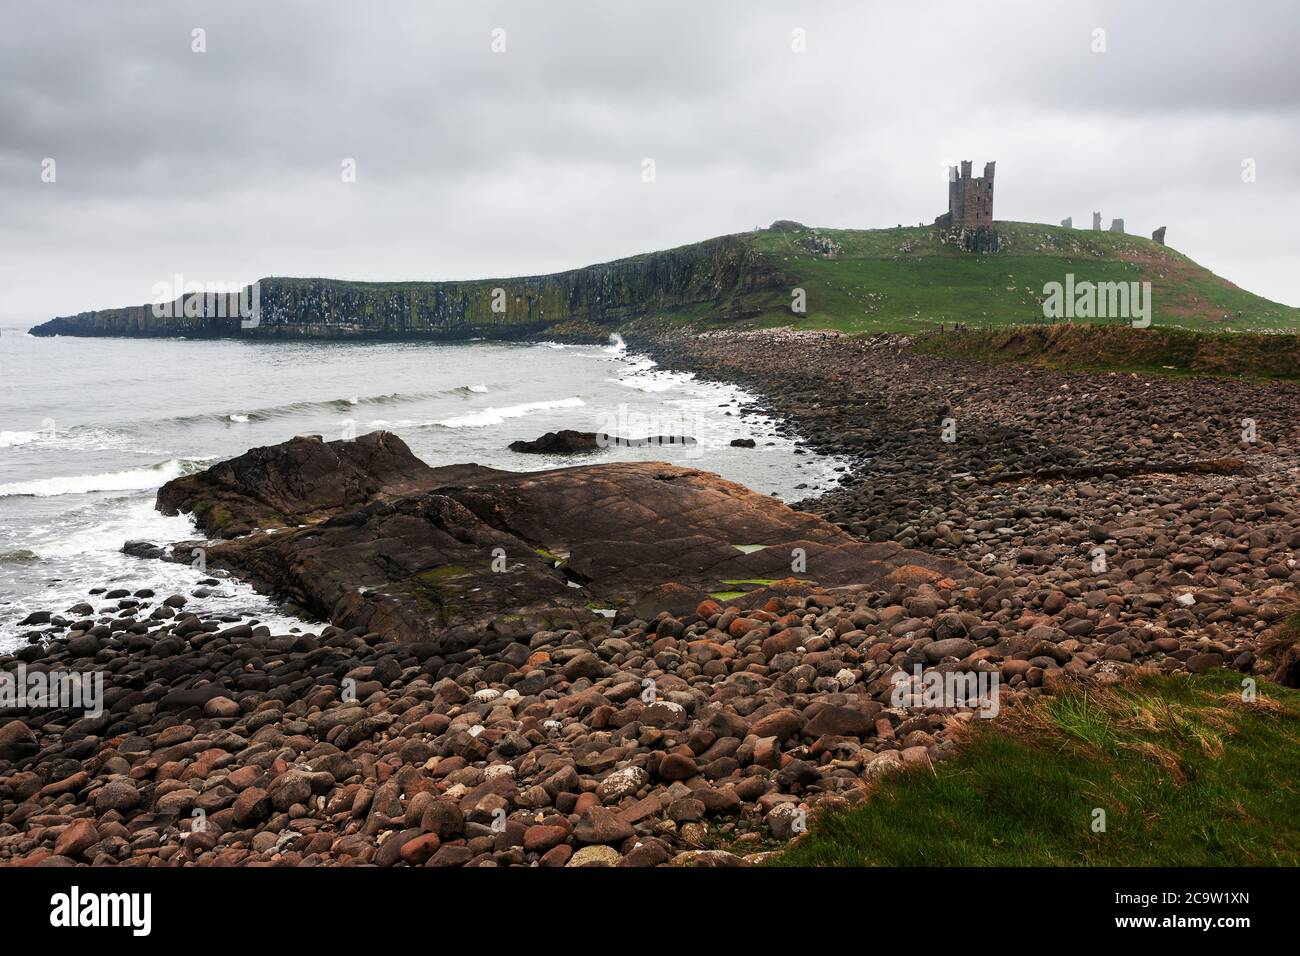 The ruins of Dunstanburgh Castle, Northumberland from Embleton Bay Stock Photo